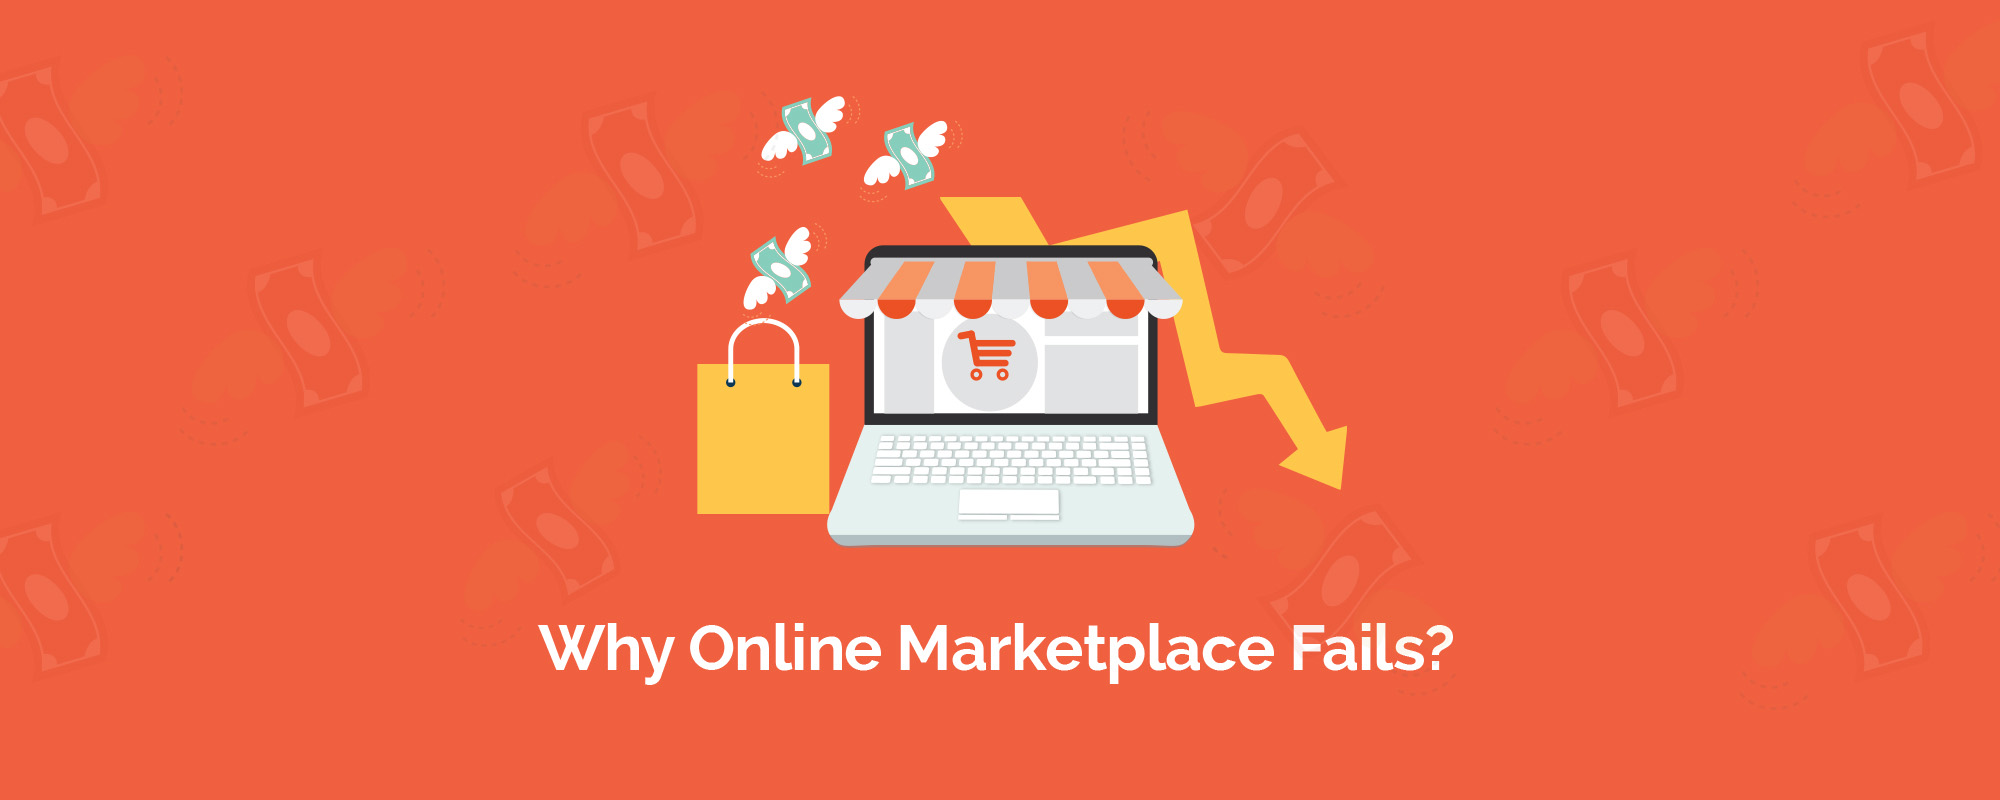 Why Most Online Marketplaces Fail to Build User Base and Never Turn Profitable?